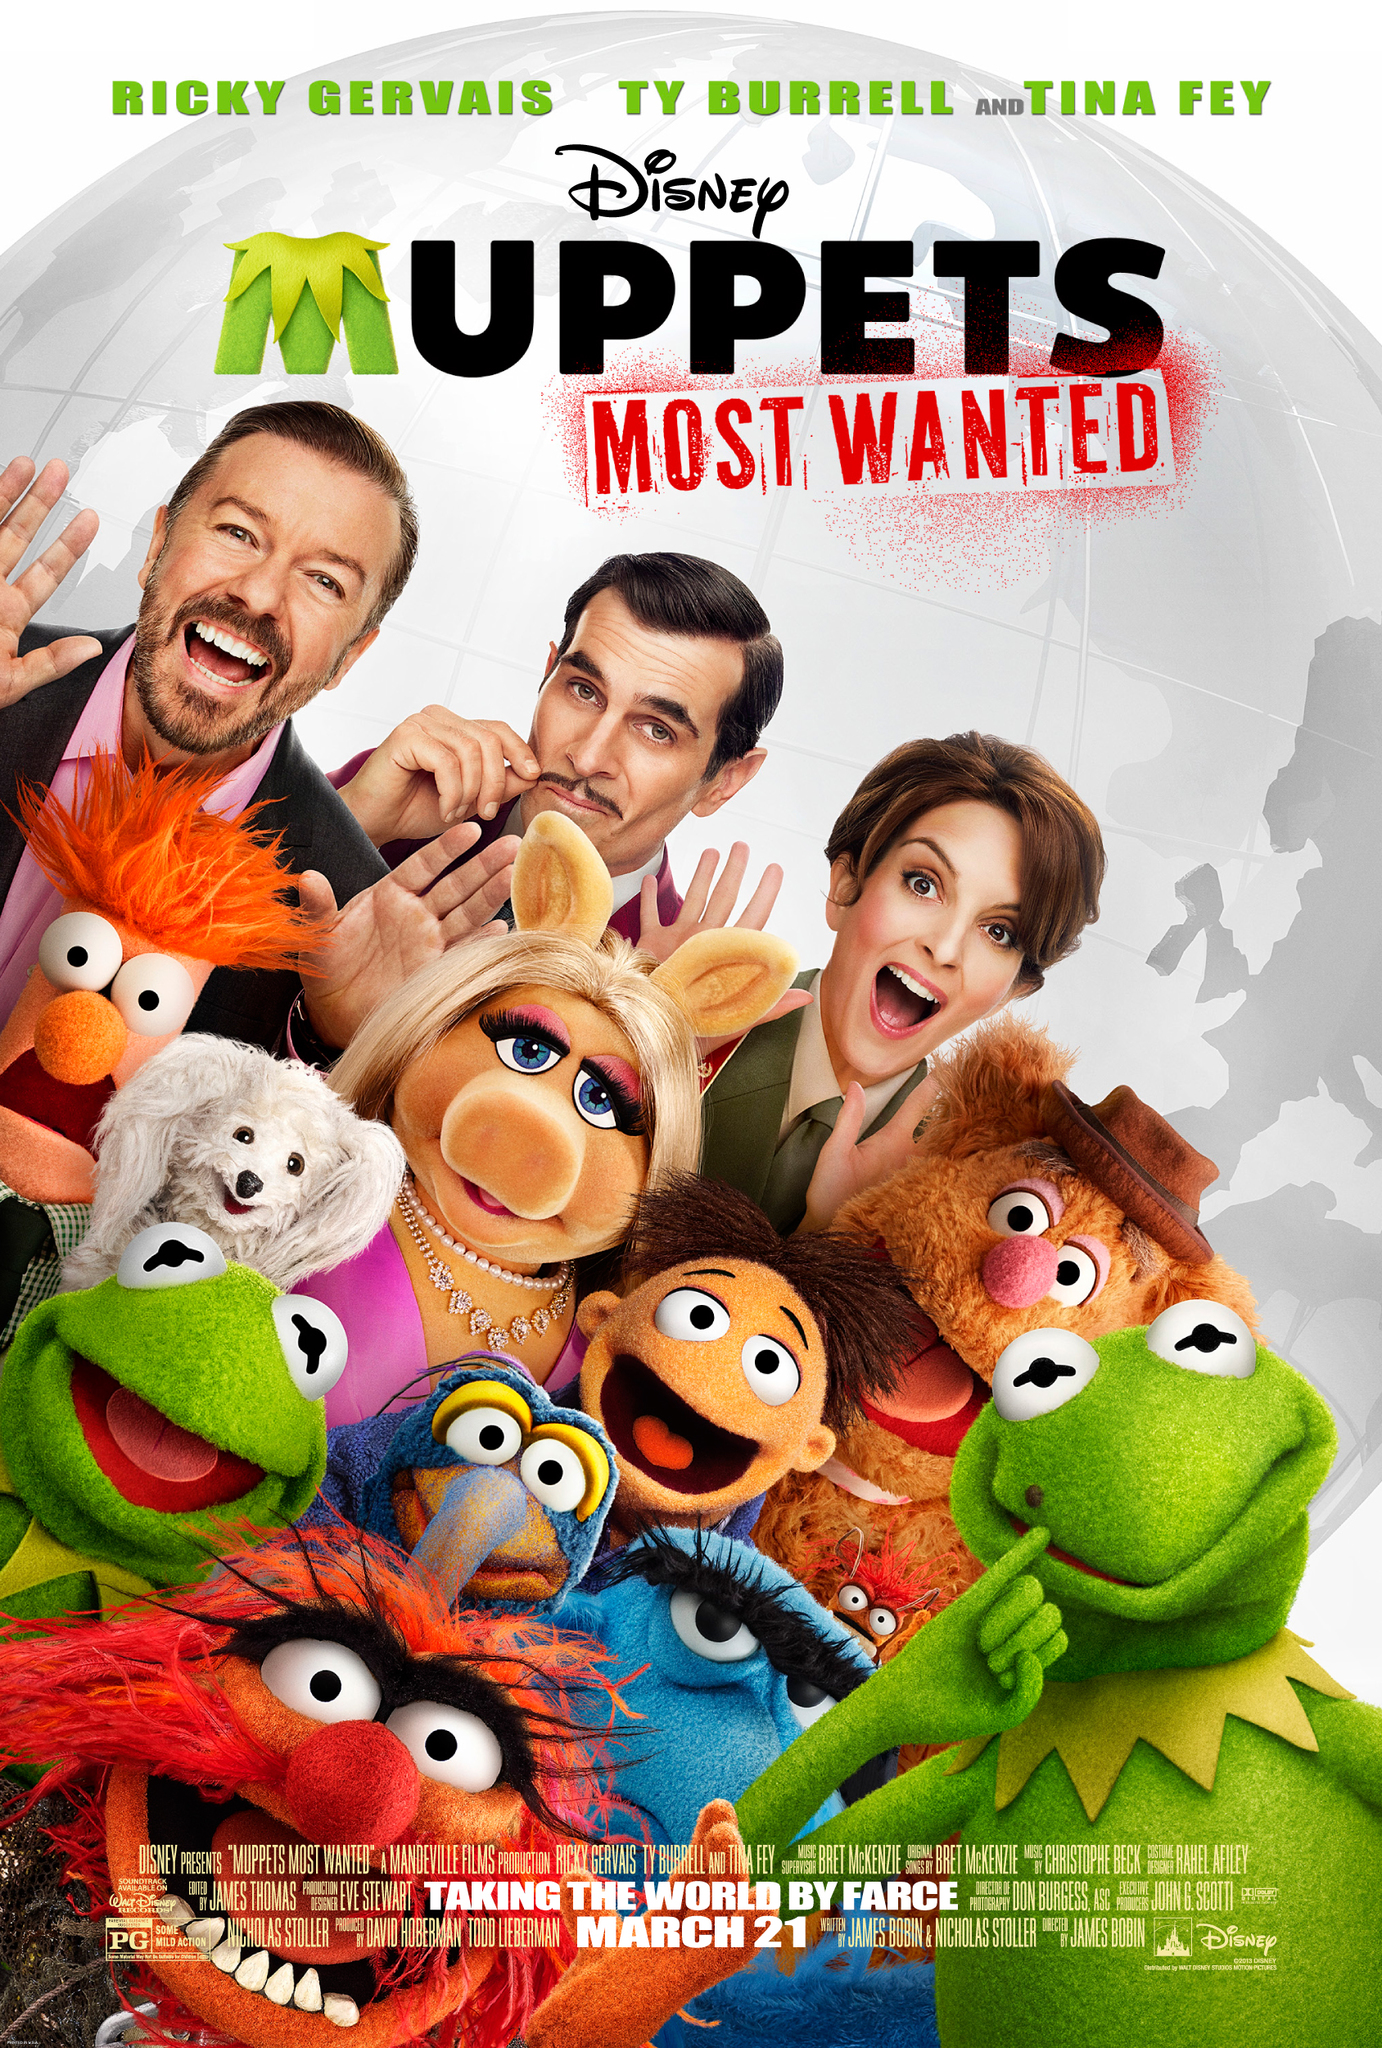 Muppets Most Wanted (2014) Technical Specifications